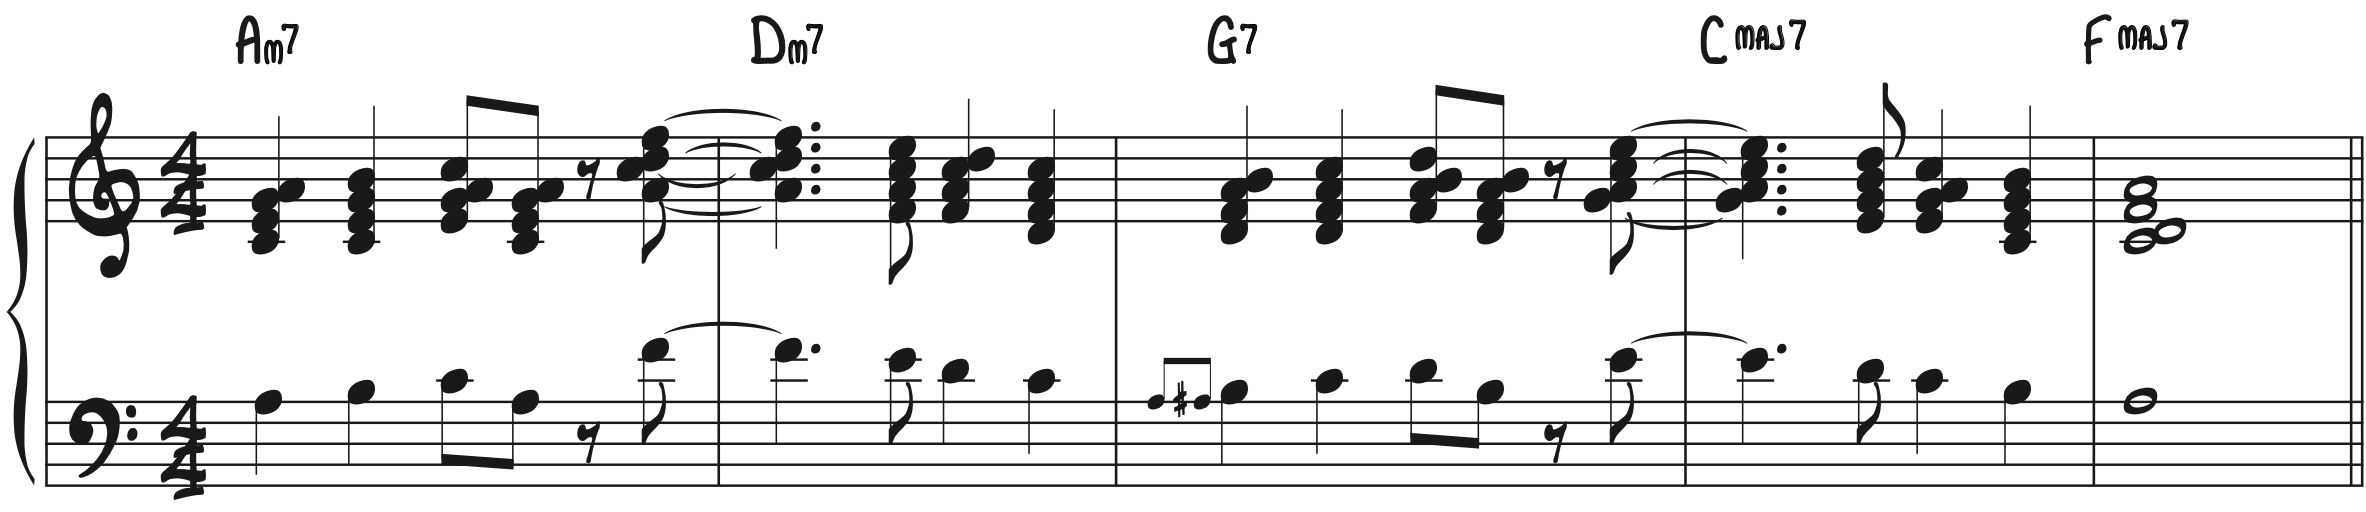 Fly On By in Block Chords jazz piano George Shearing style